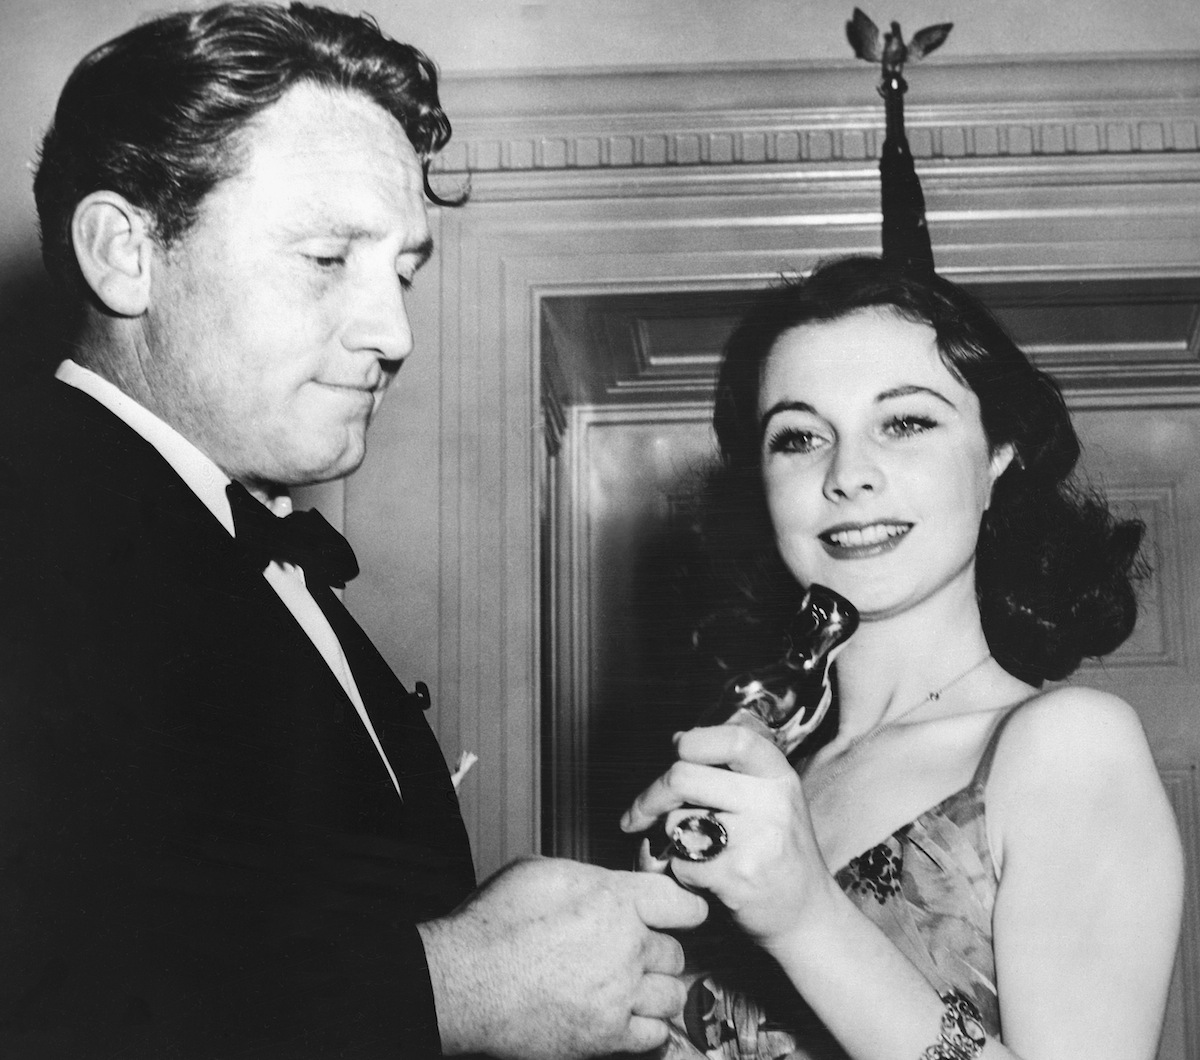 Actor Spencer Tracy and Vivien Leigh, winner of Best Actress for  Gone With the Wind,  during the 12th Annual Academy Awards held at the Cocoanut Grove in The Ambassador Hotel in Los Angeles, Calidfornia on Feb. 29, 1940